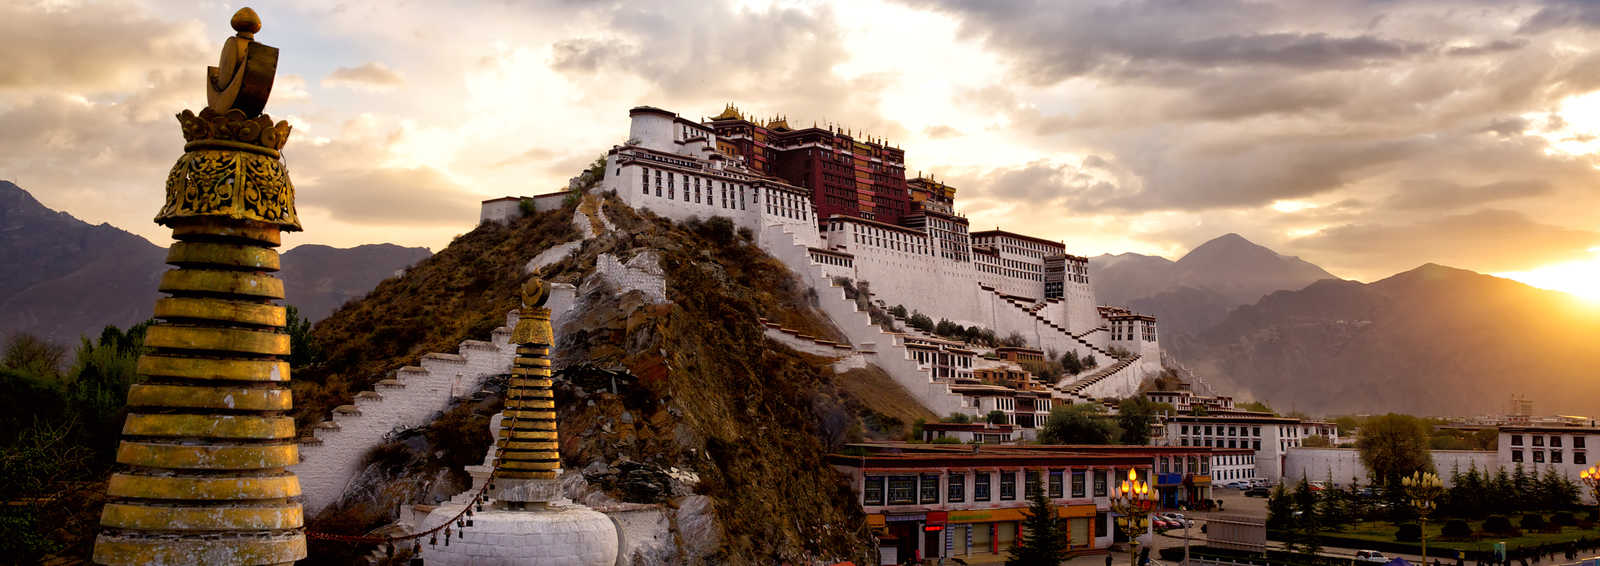 Potala palace at sunrise in Lhasa, Tibet